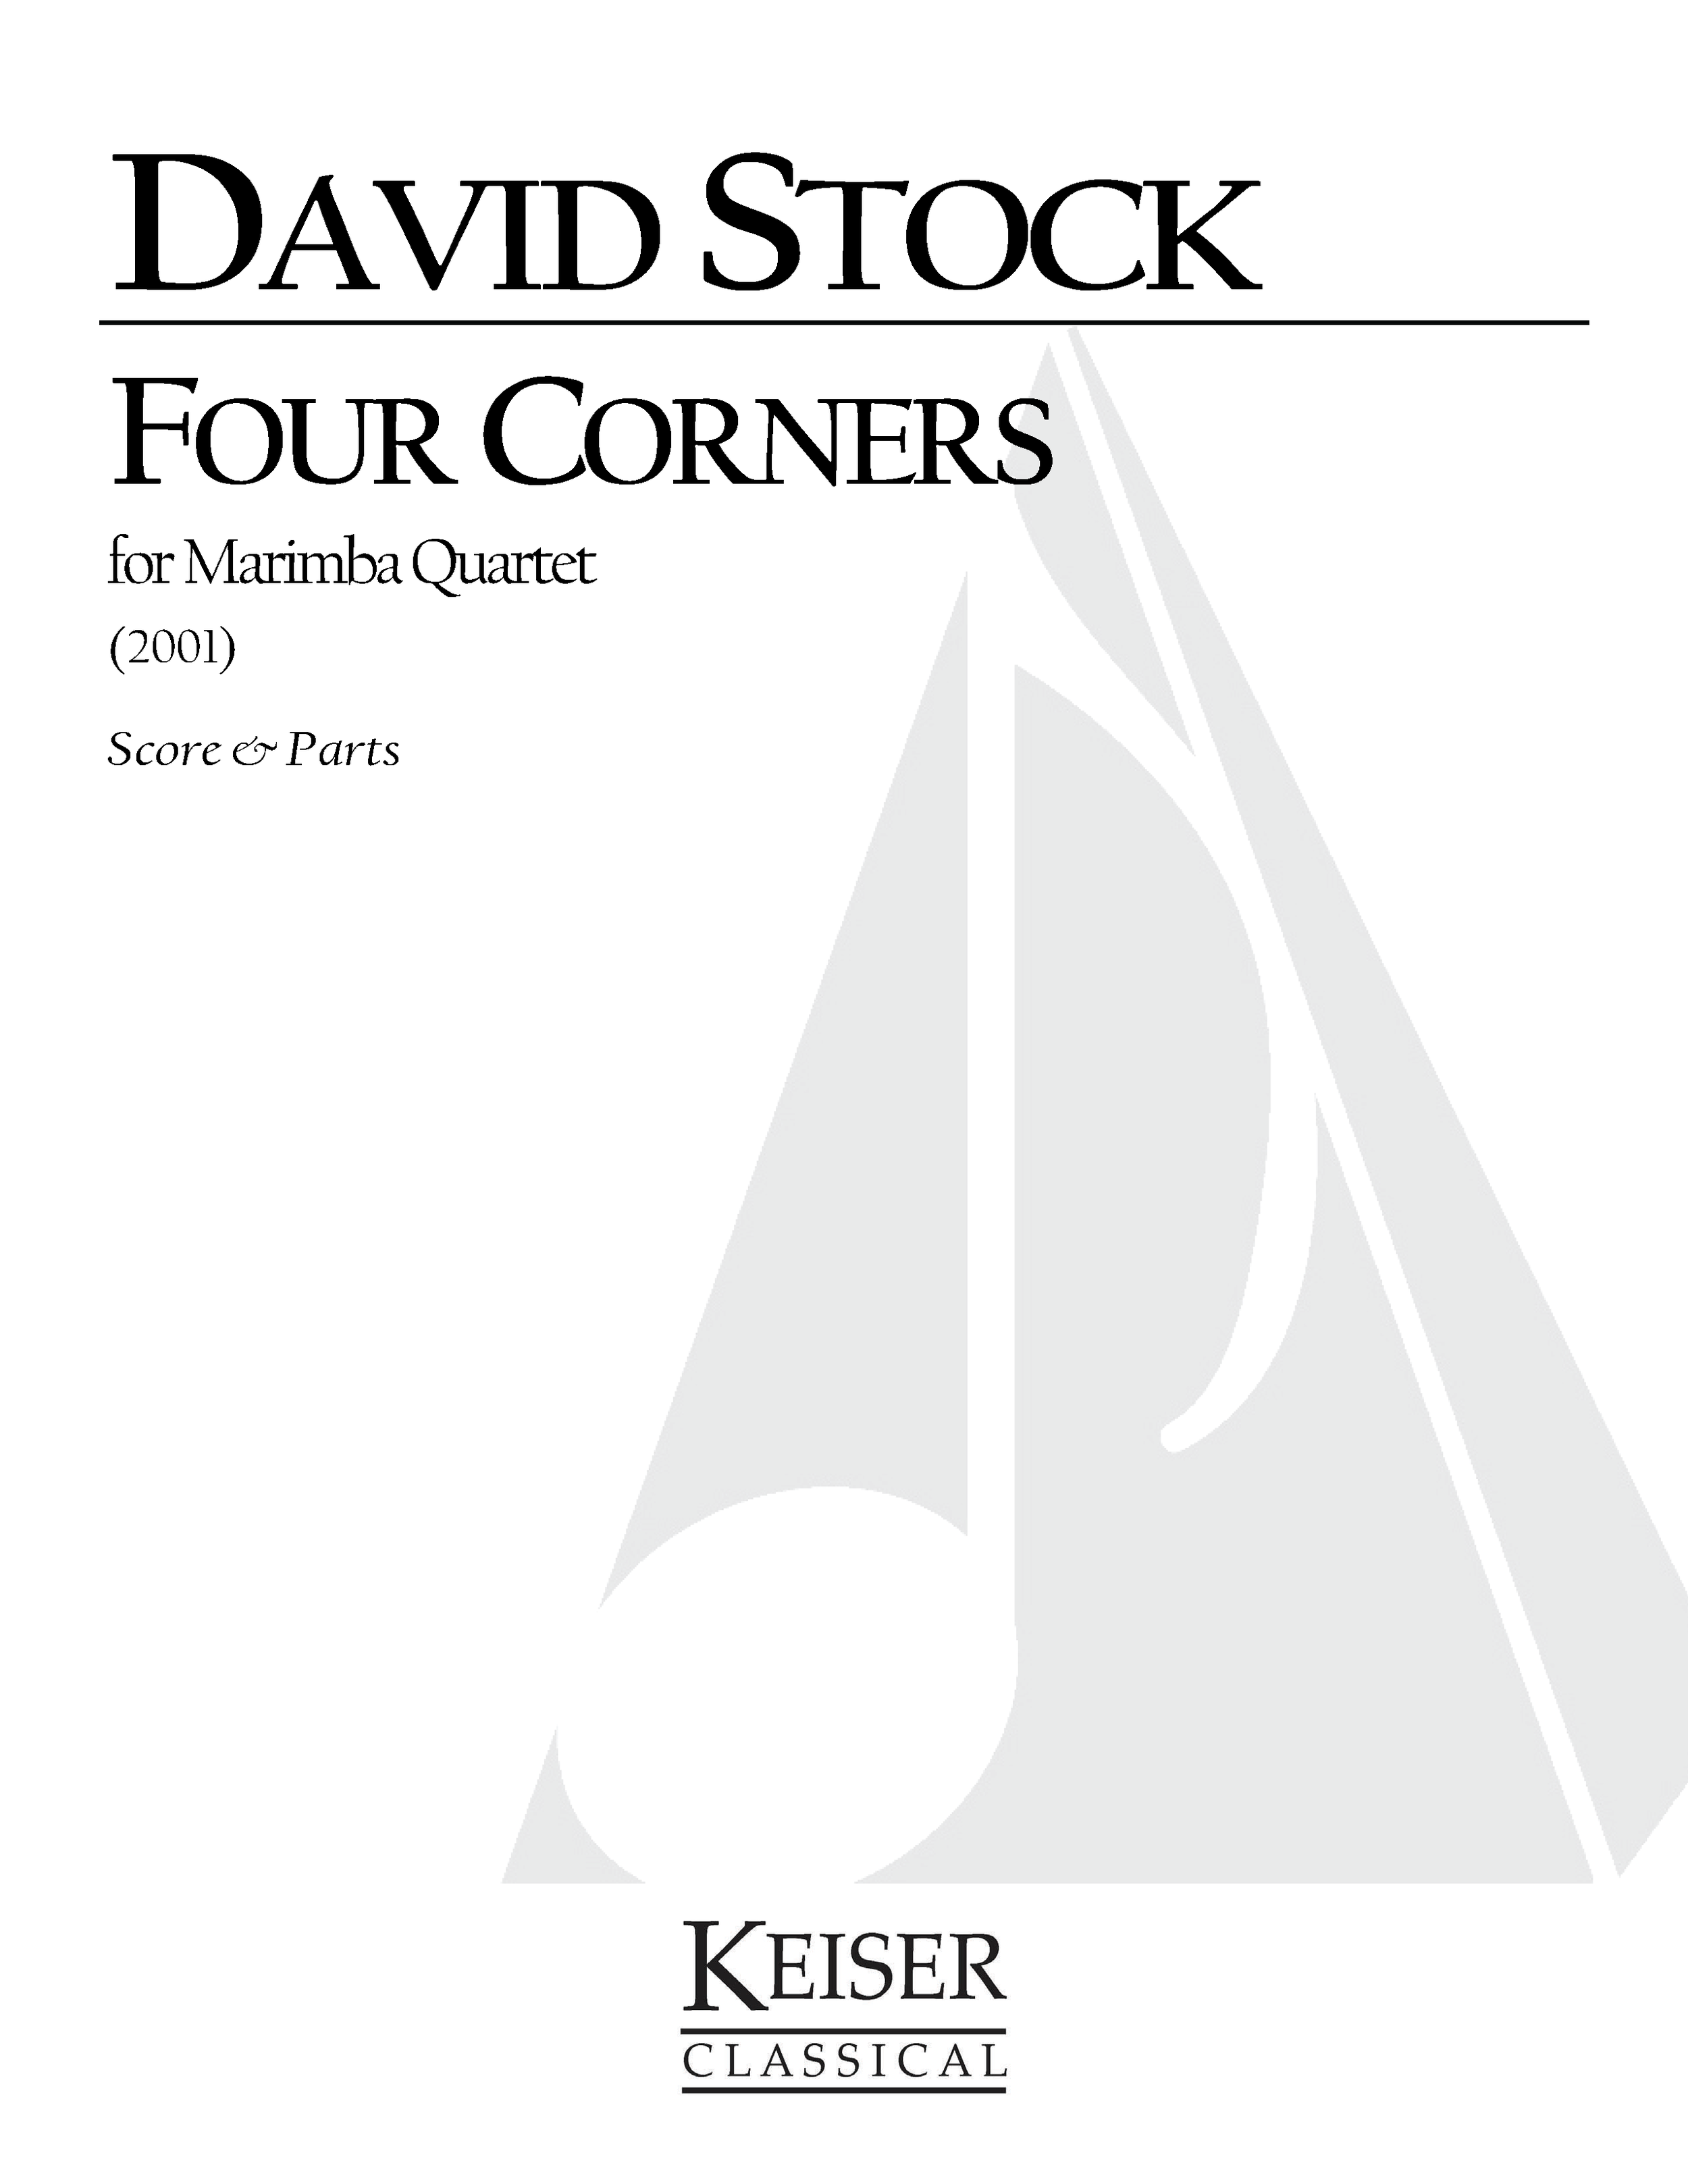 Four Corners for Marimba Quartet (2011) - 4 MarimbasRent/Buy: Keiser Music